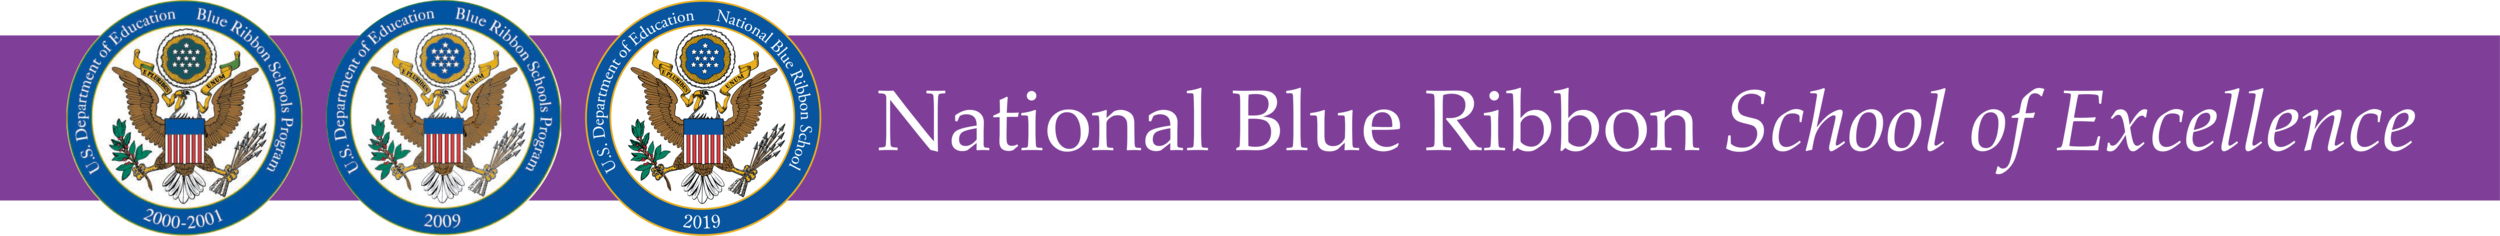 3 Time Blue Ribbon Graphic-01.png